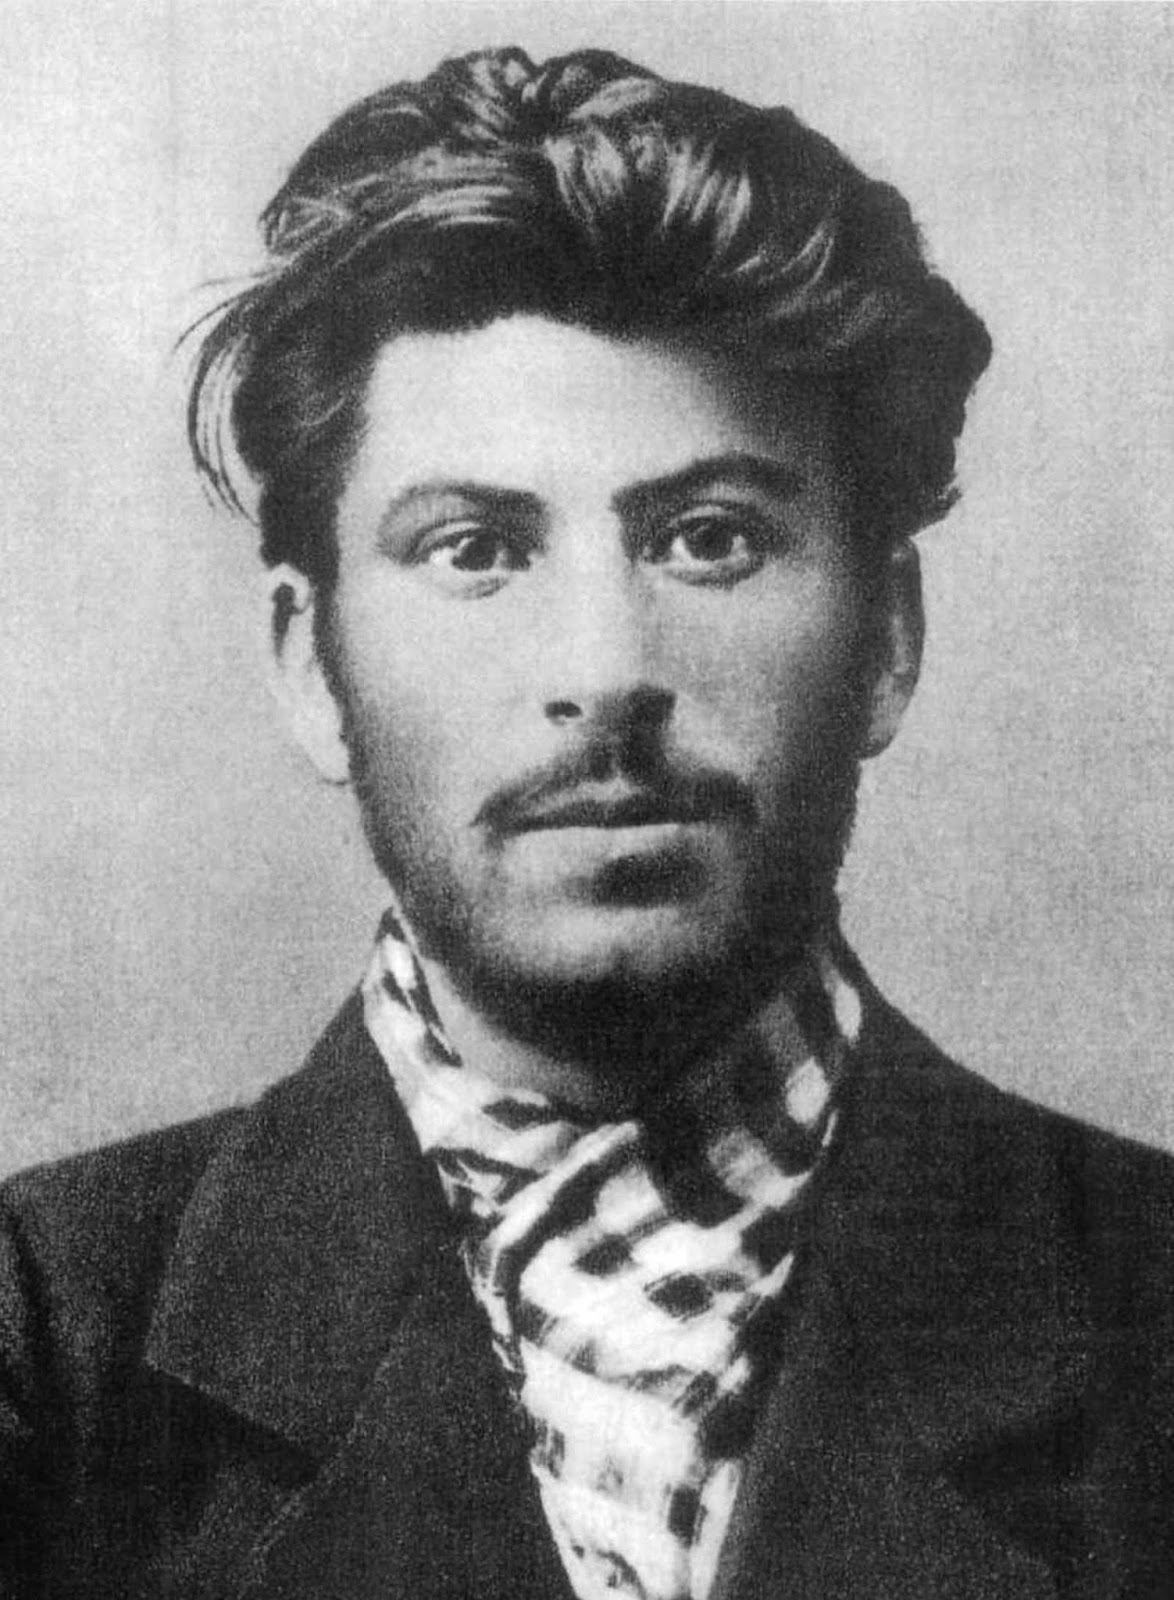 Stalin: handsome as a devil at 23 years old with tousled hair and short beard